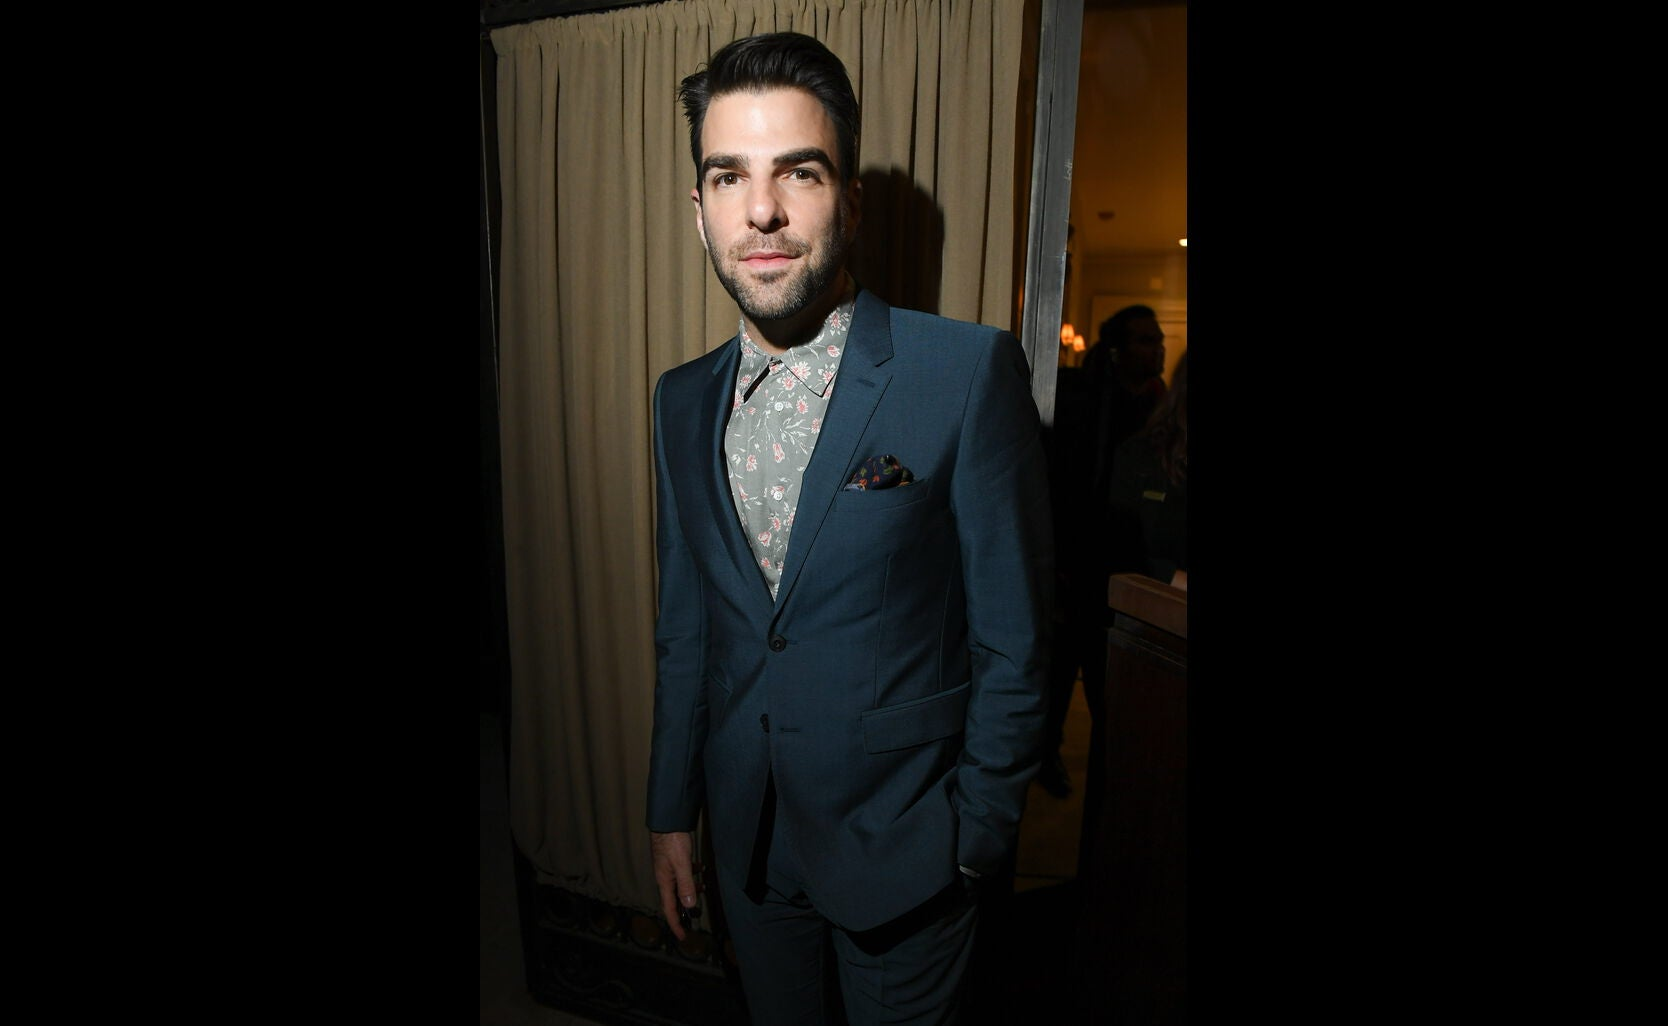 Actor Zachary Quinto at the HFPA/InStyle party, Toronto 2016